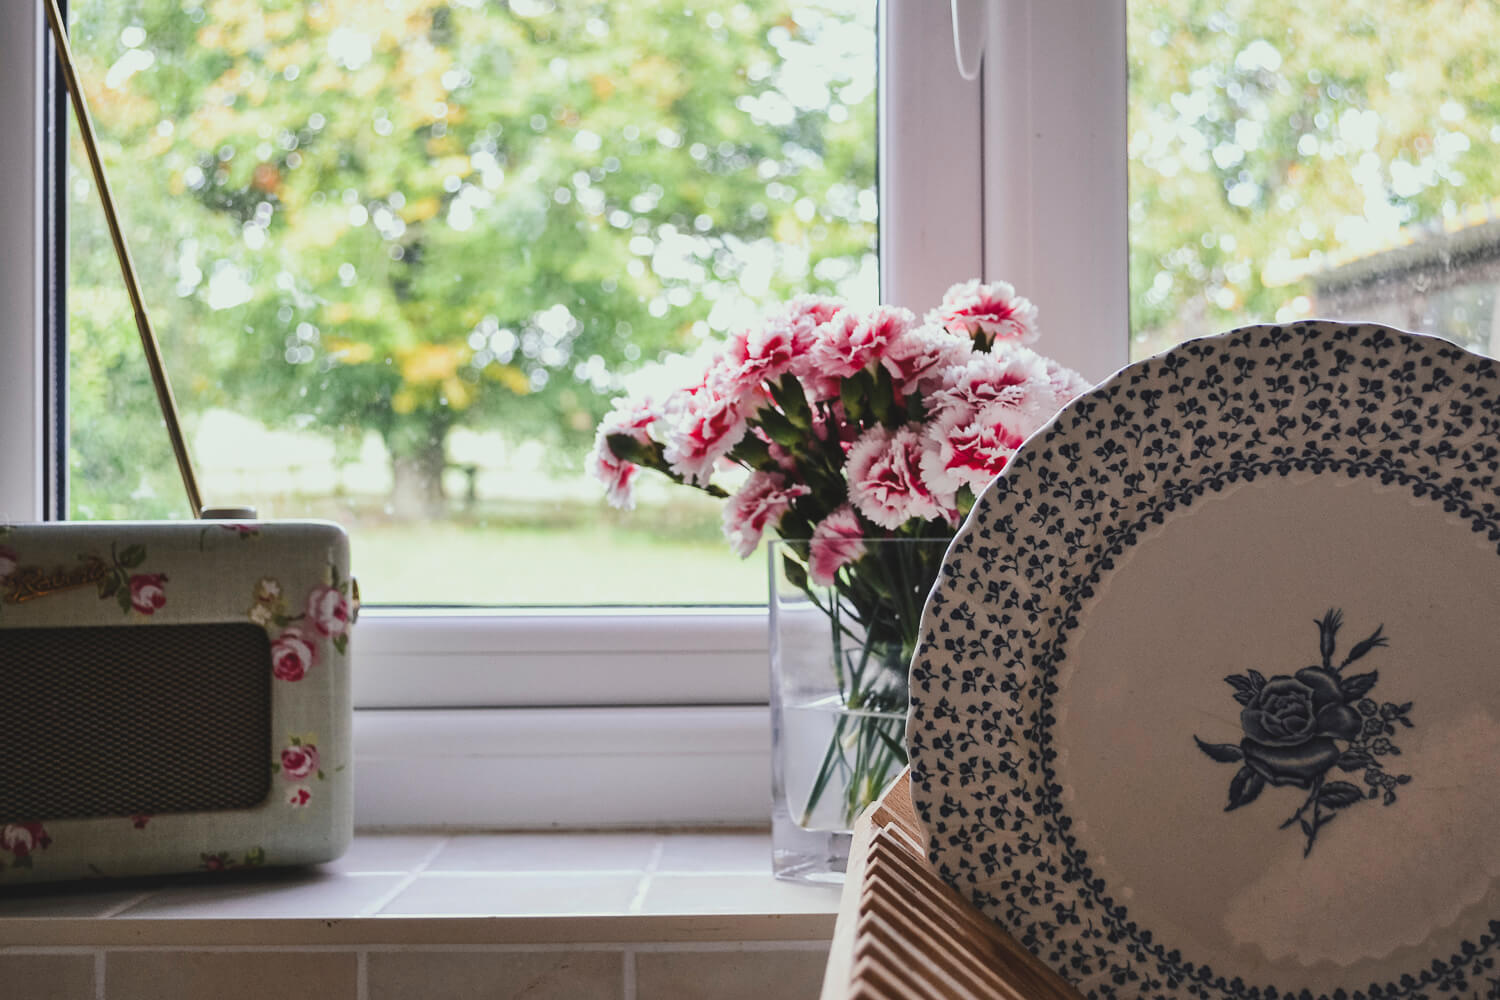 Roses and vintage china in a country kitchen - time management hacks